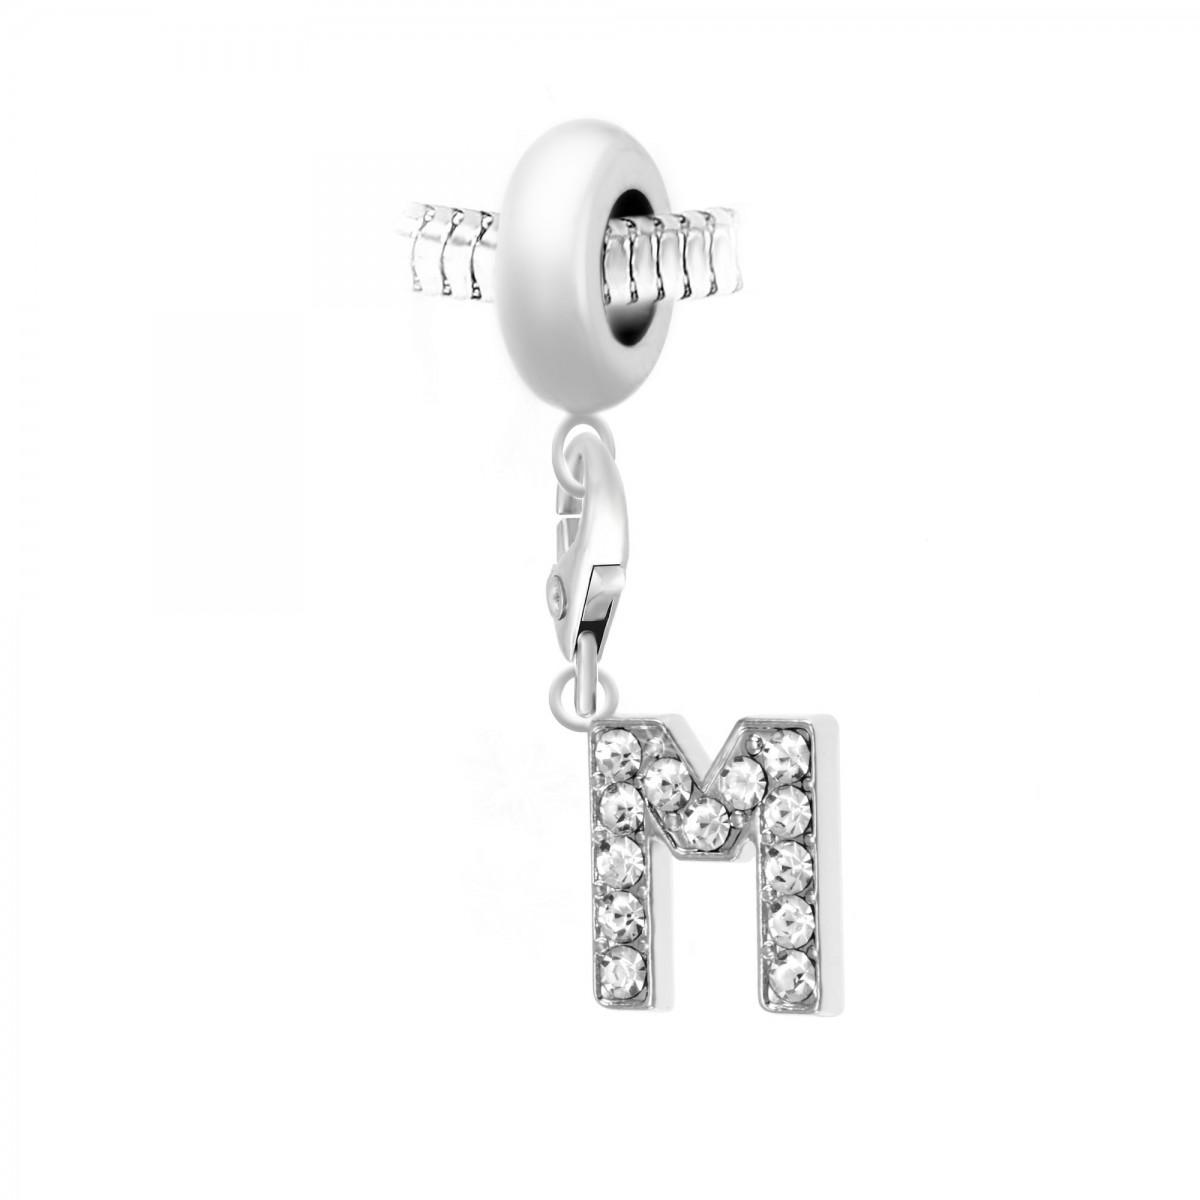 Charm perle So Charm en acier avec pendentif lettre M made with crystal from Swarovski